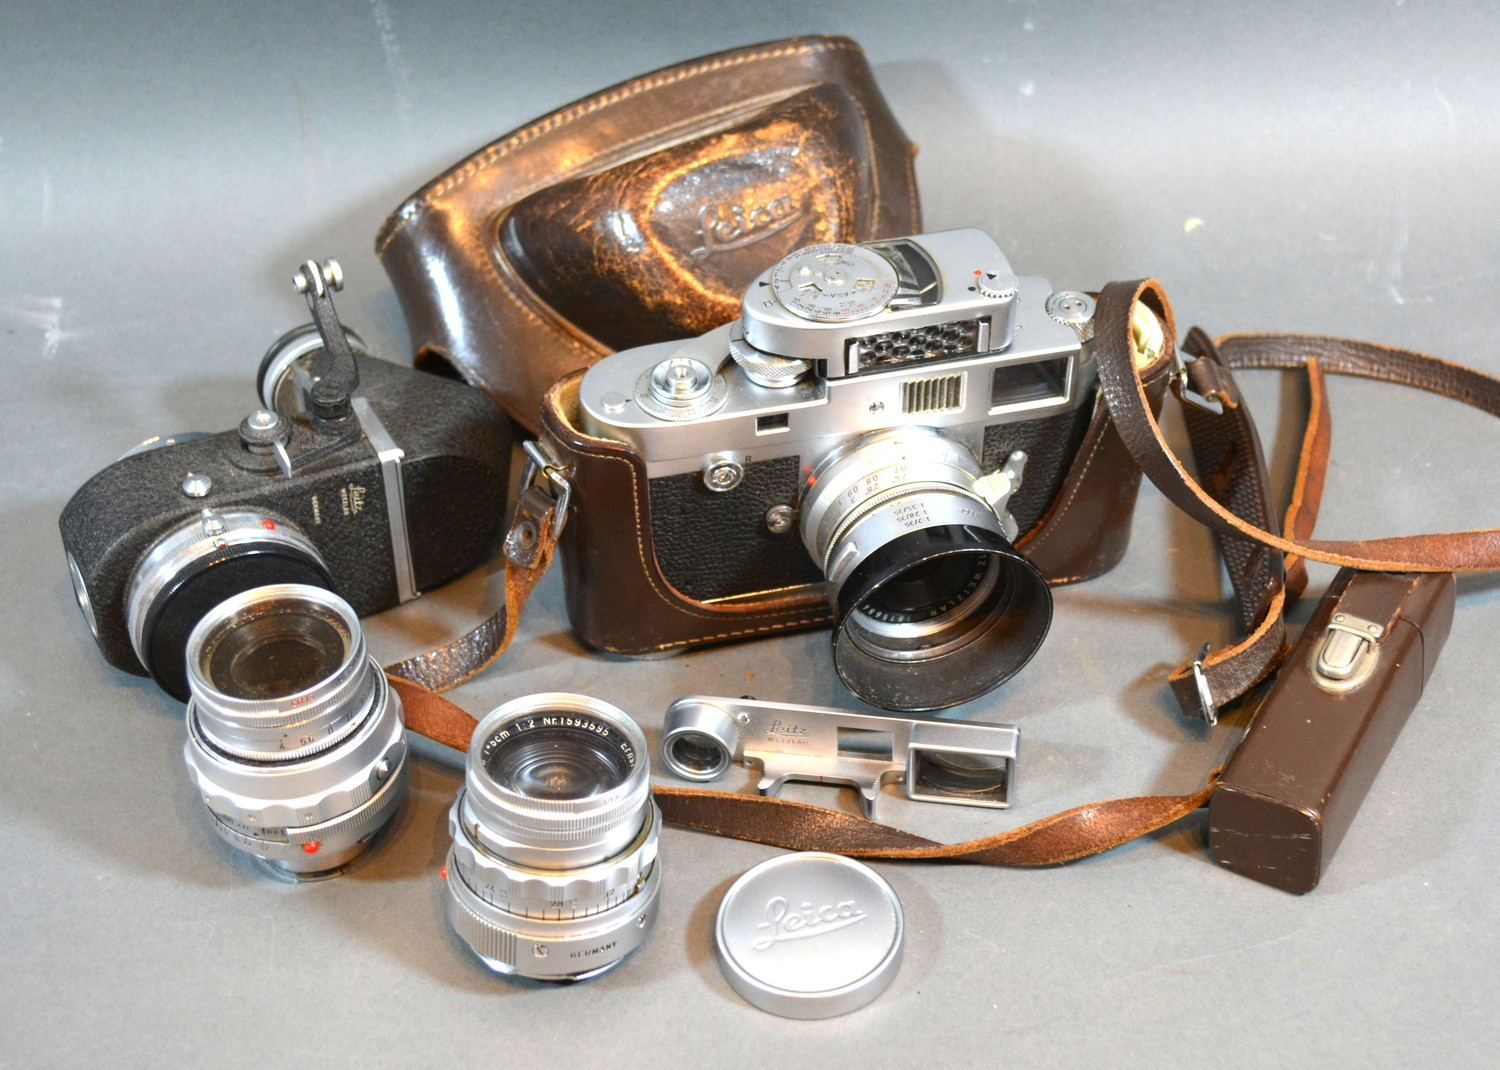 A Leica M2 Camera Serial Number 970051 together with a Leitz Betzlar 1815684 Summaron 1.28/35